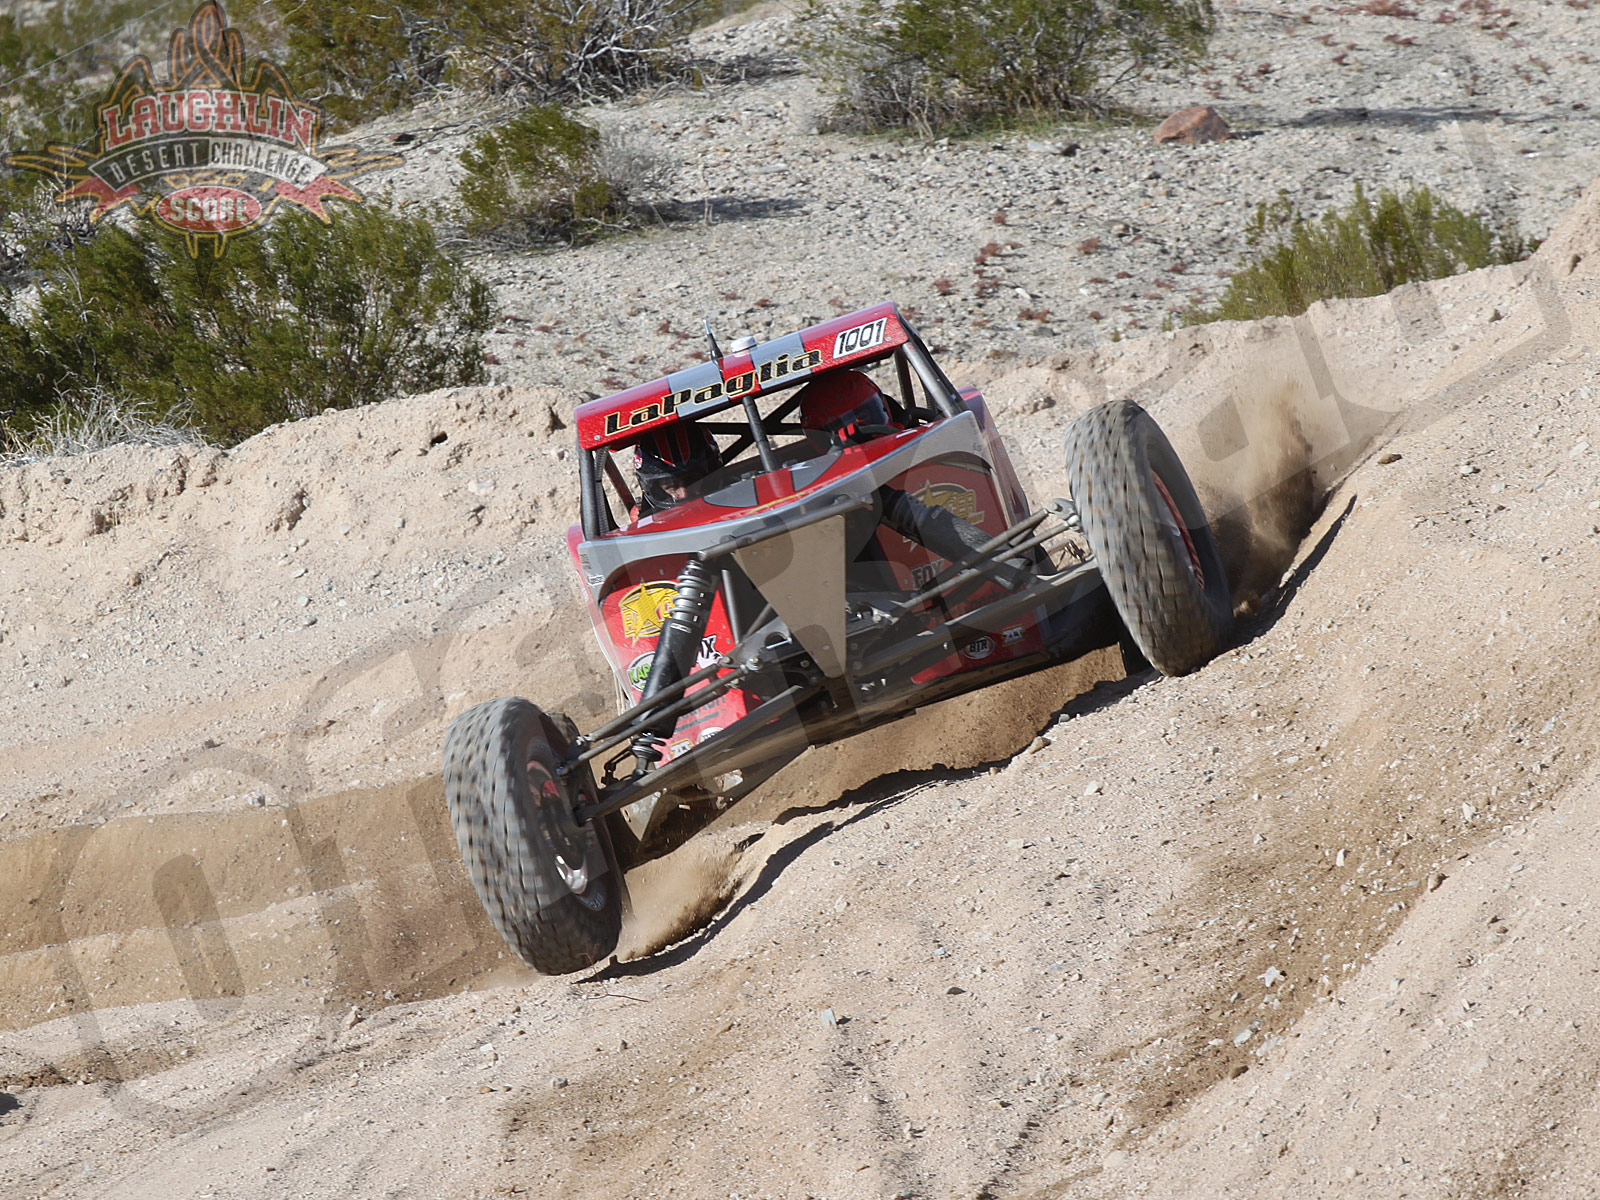 012111or 5798+2011 score laughlin desert challenge+buggy classes